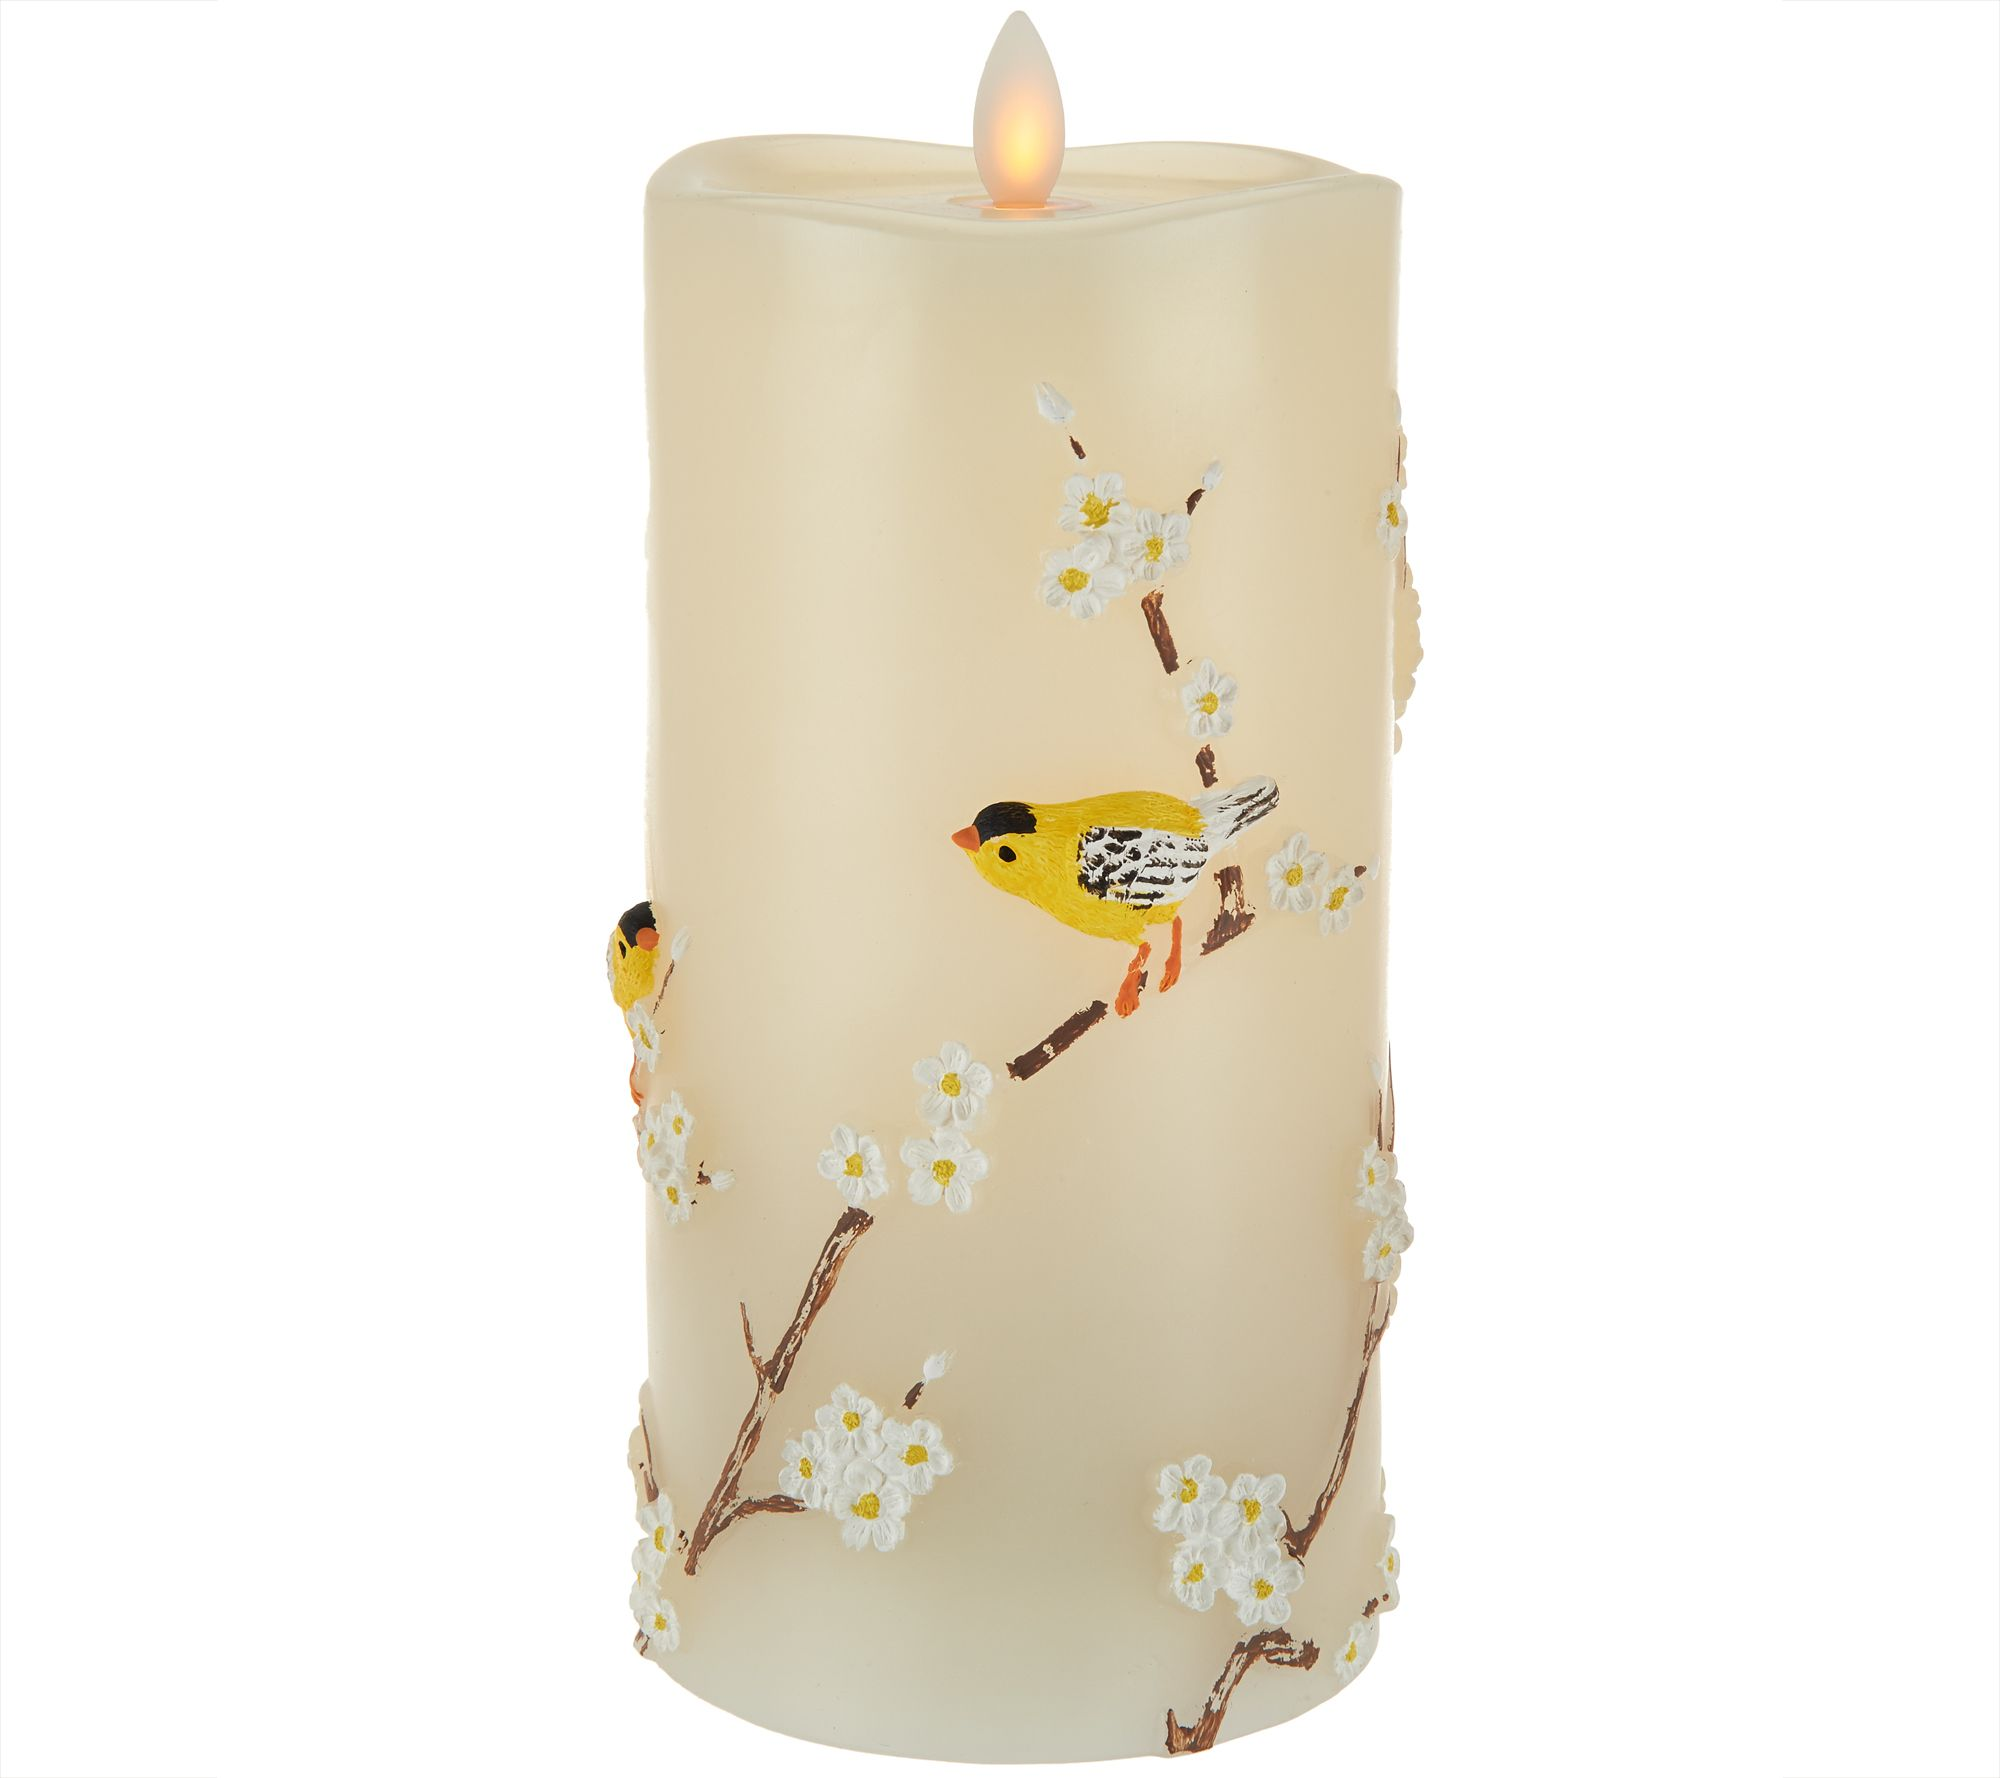 7 5 mirage candle with embossed birds by candle impressions h210163